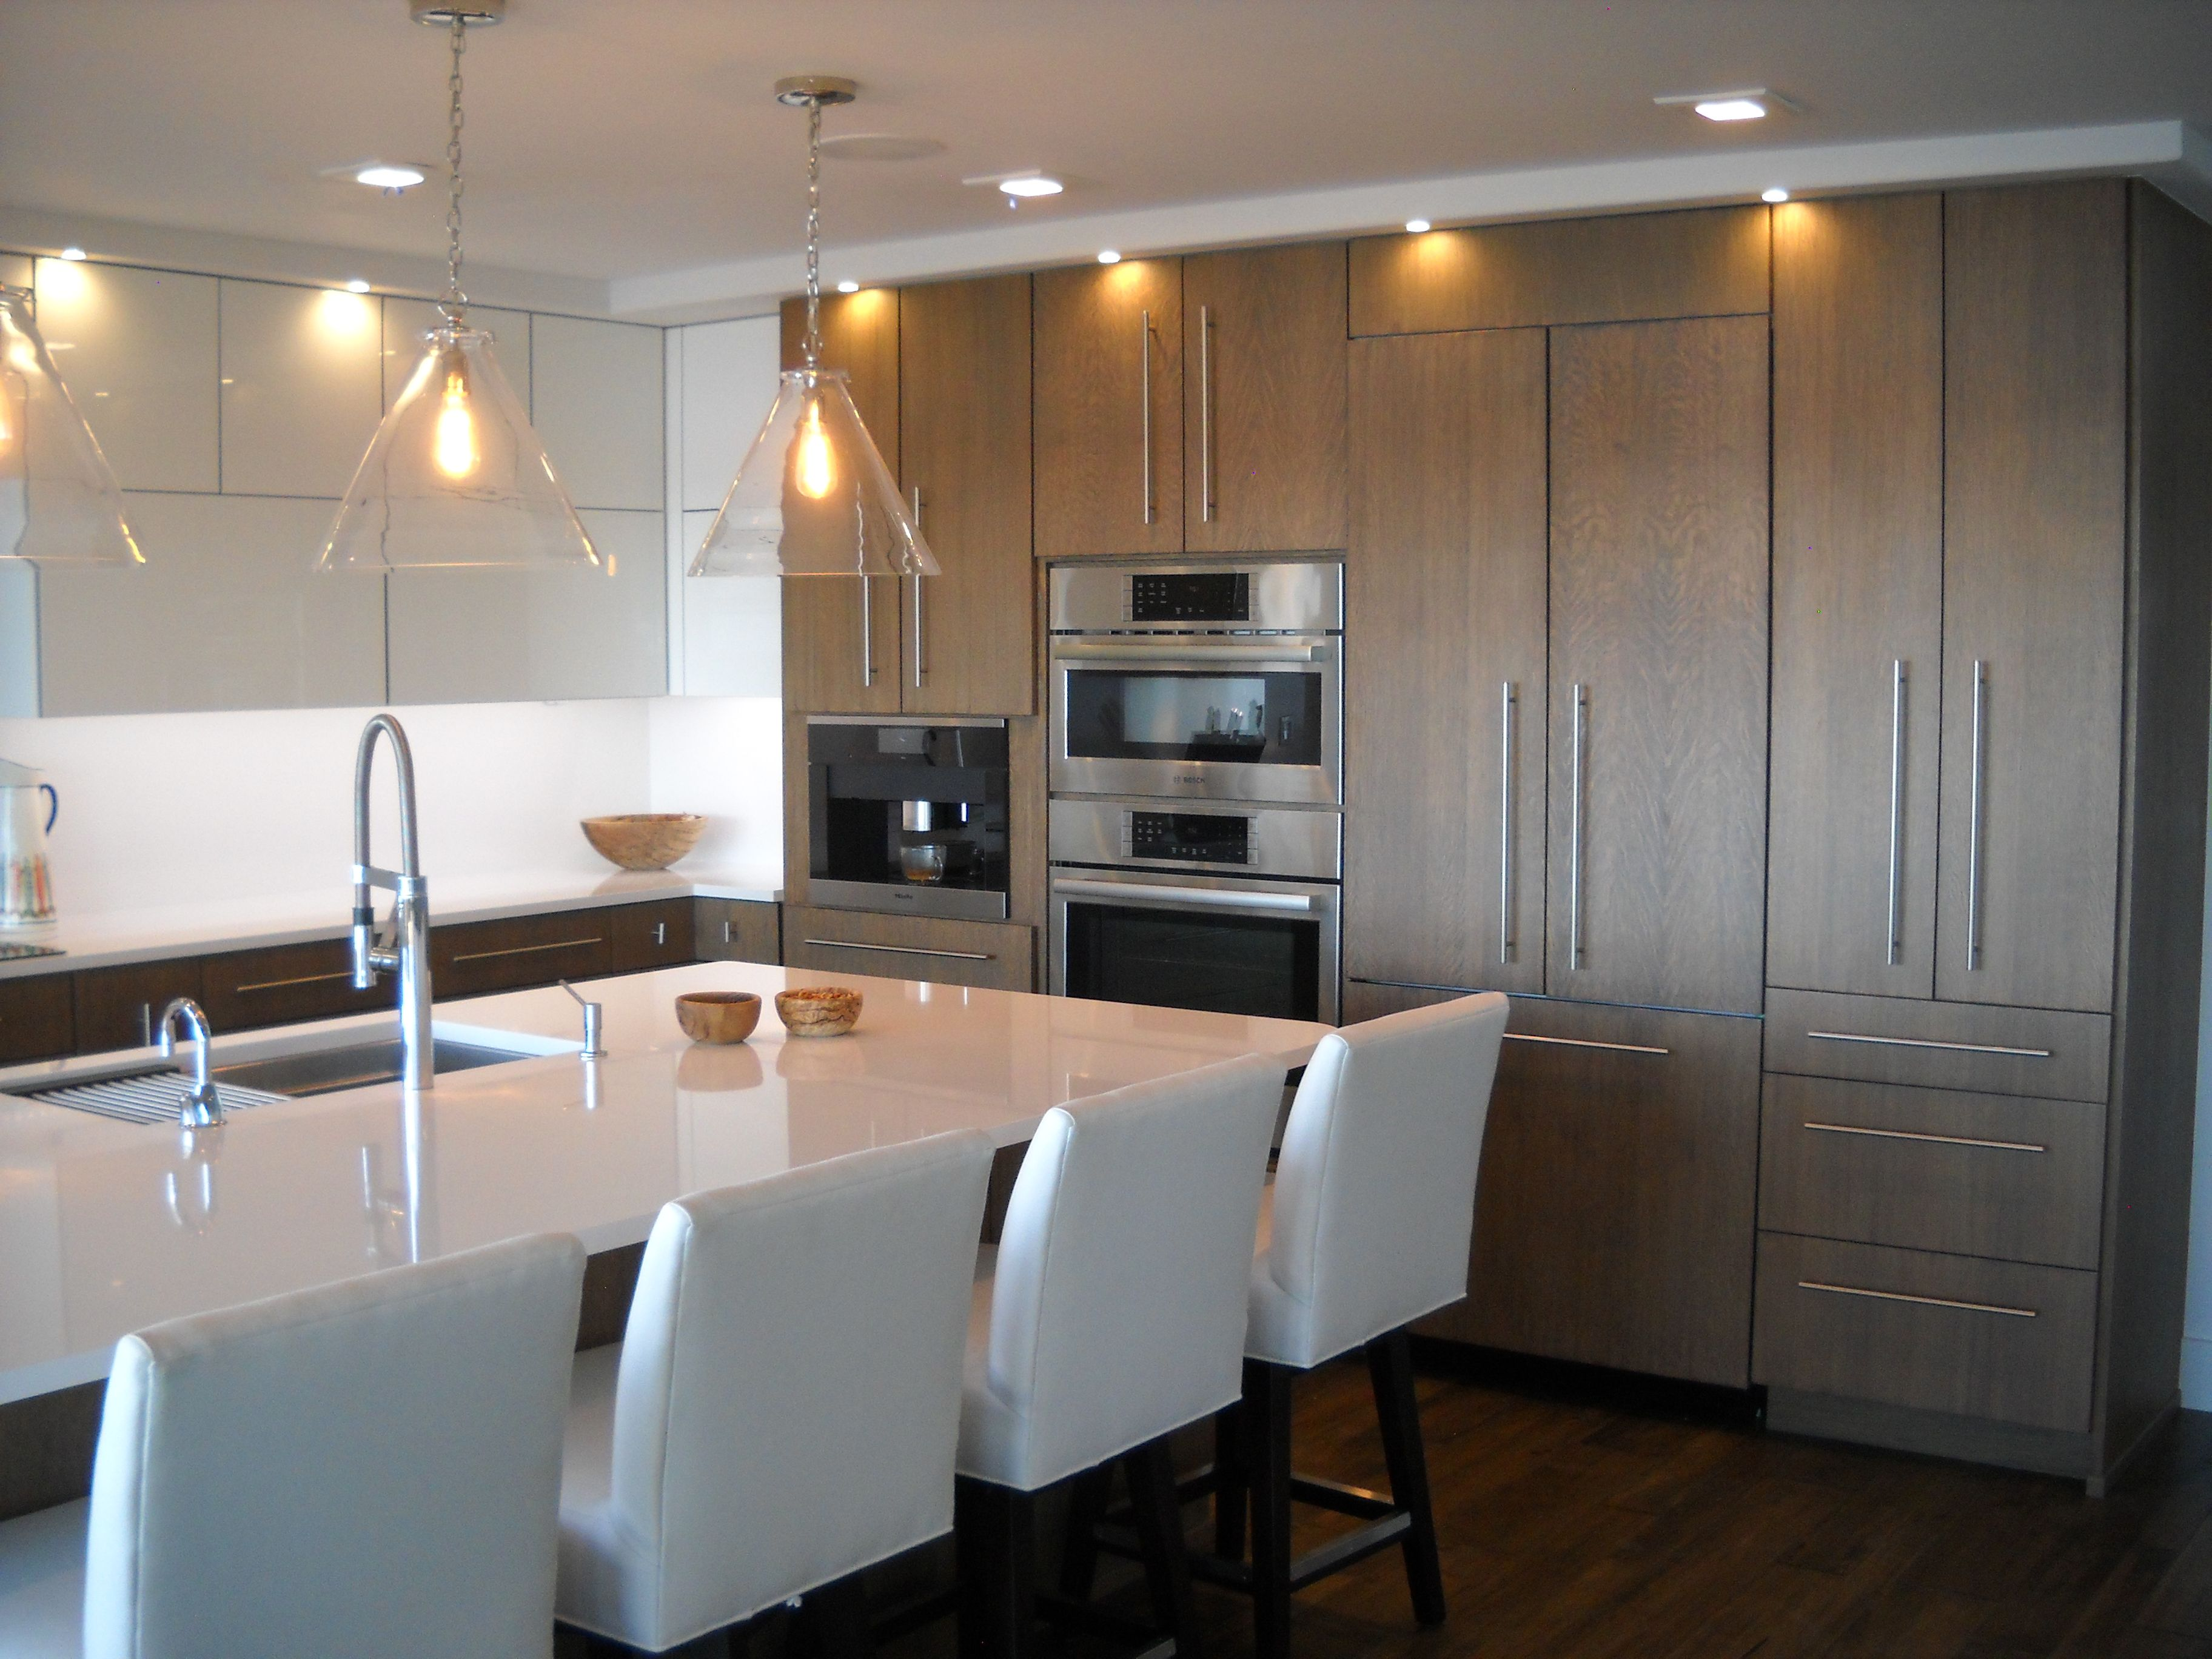 Contemporary Kitchen Cabinets With A High Gloss Lacquer And Stained Oak Mixed Finish In 2020 Contemporary Kitchen Contemporary Kitchen Cabinets Custom Cabinetry